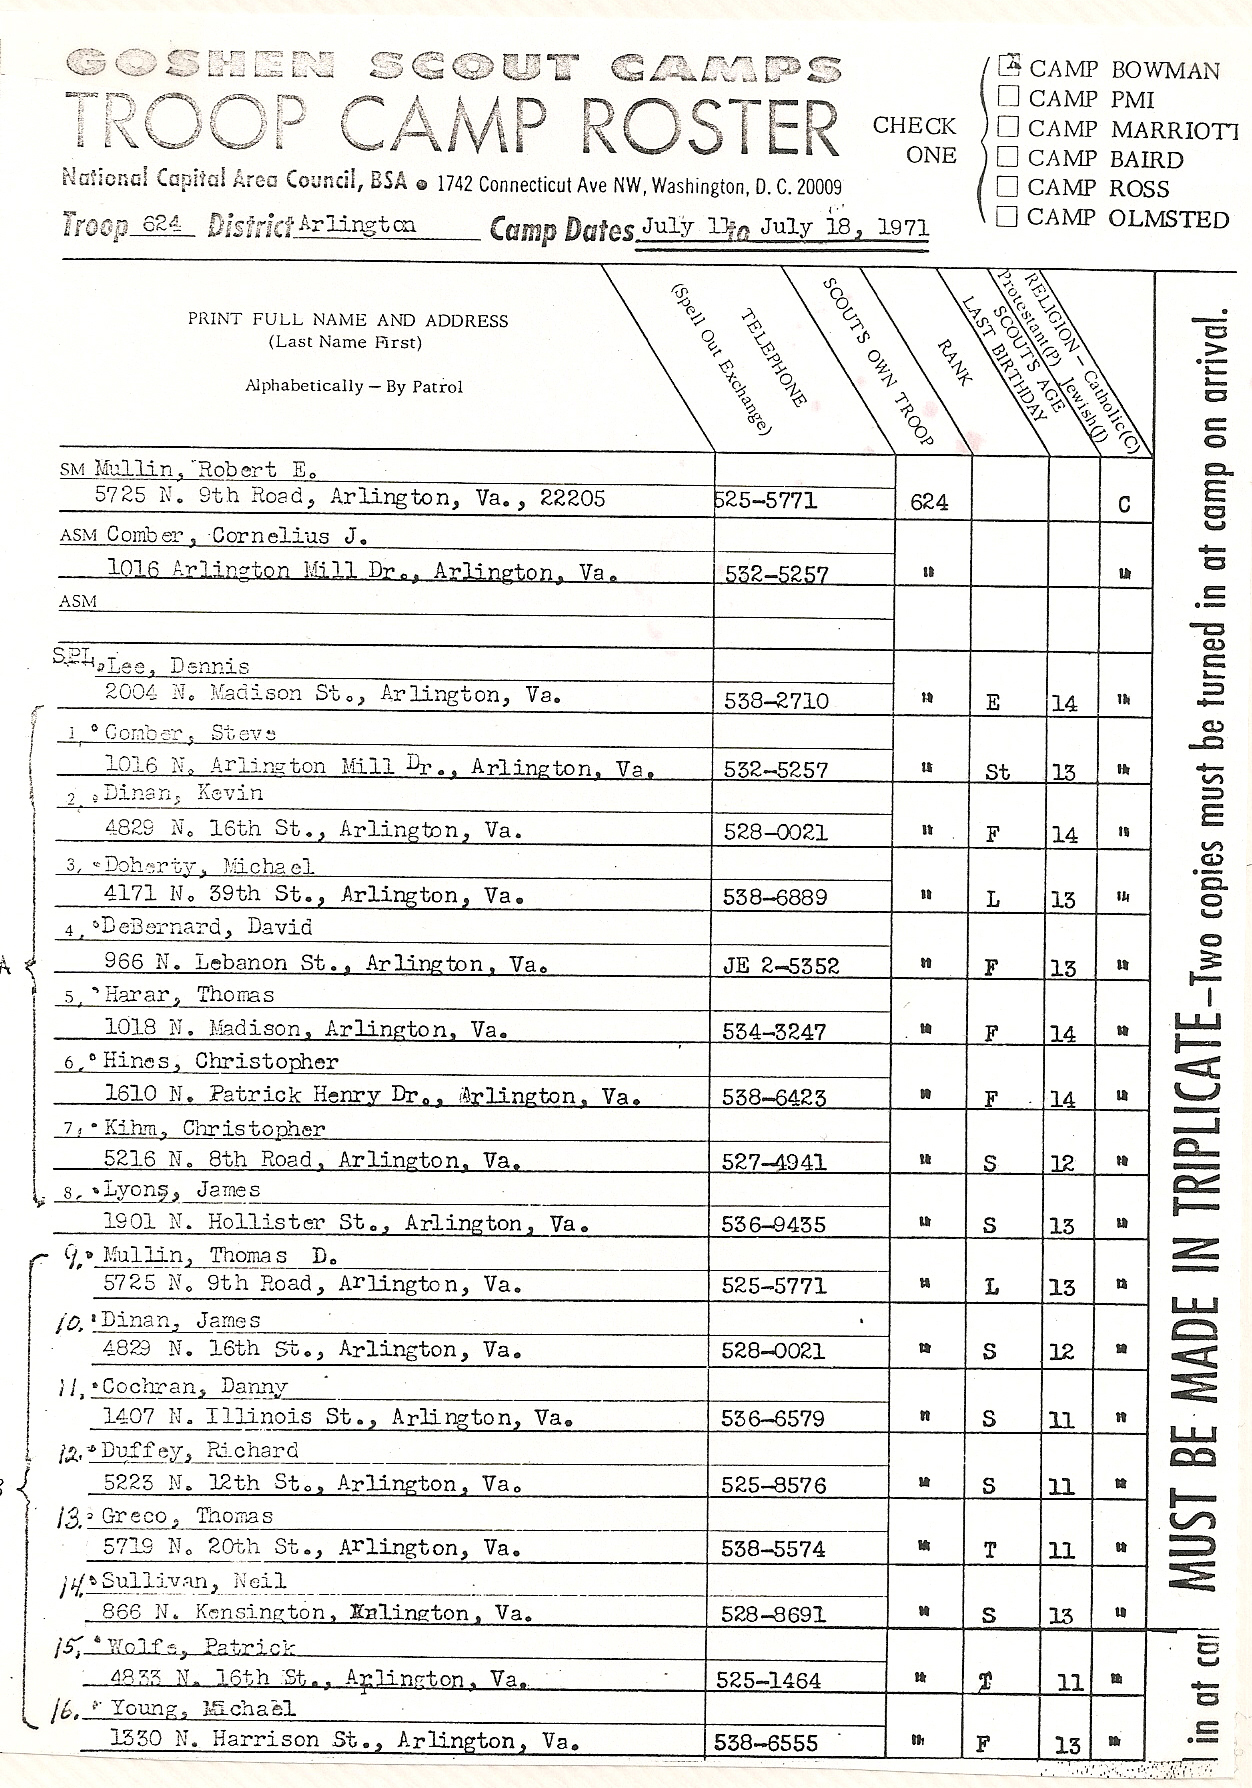 1971 Camp Roster